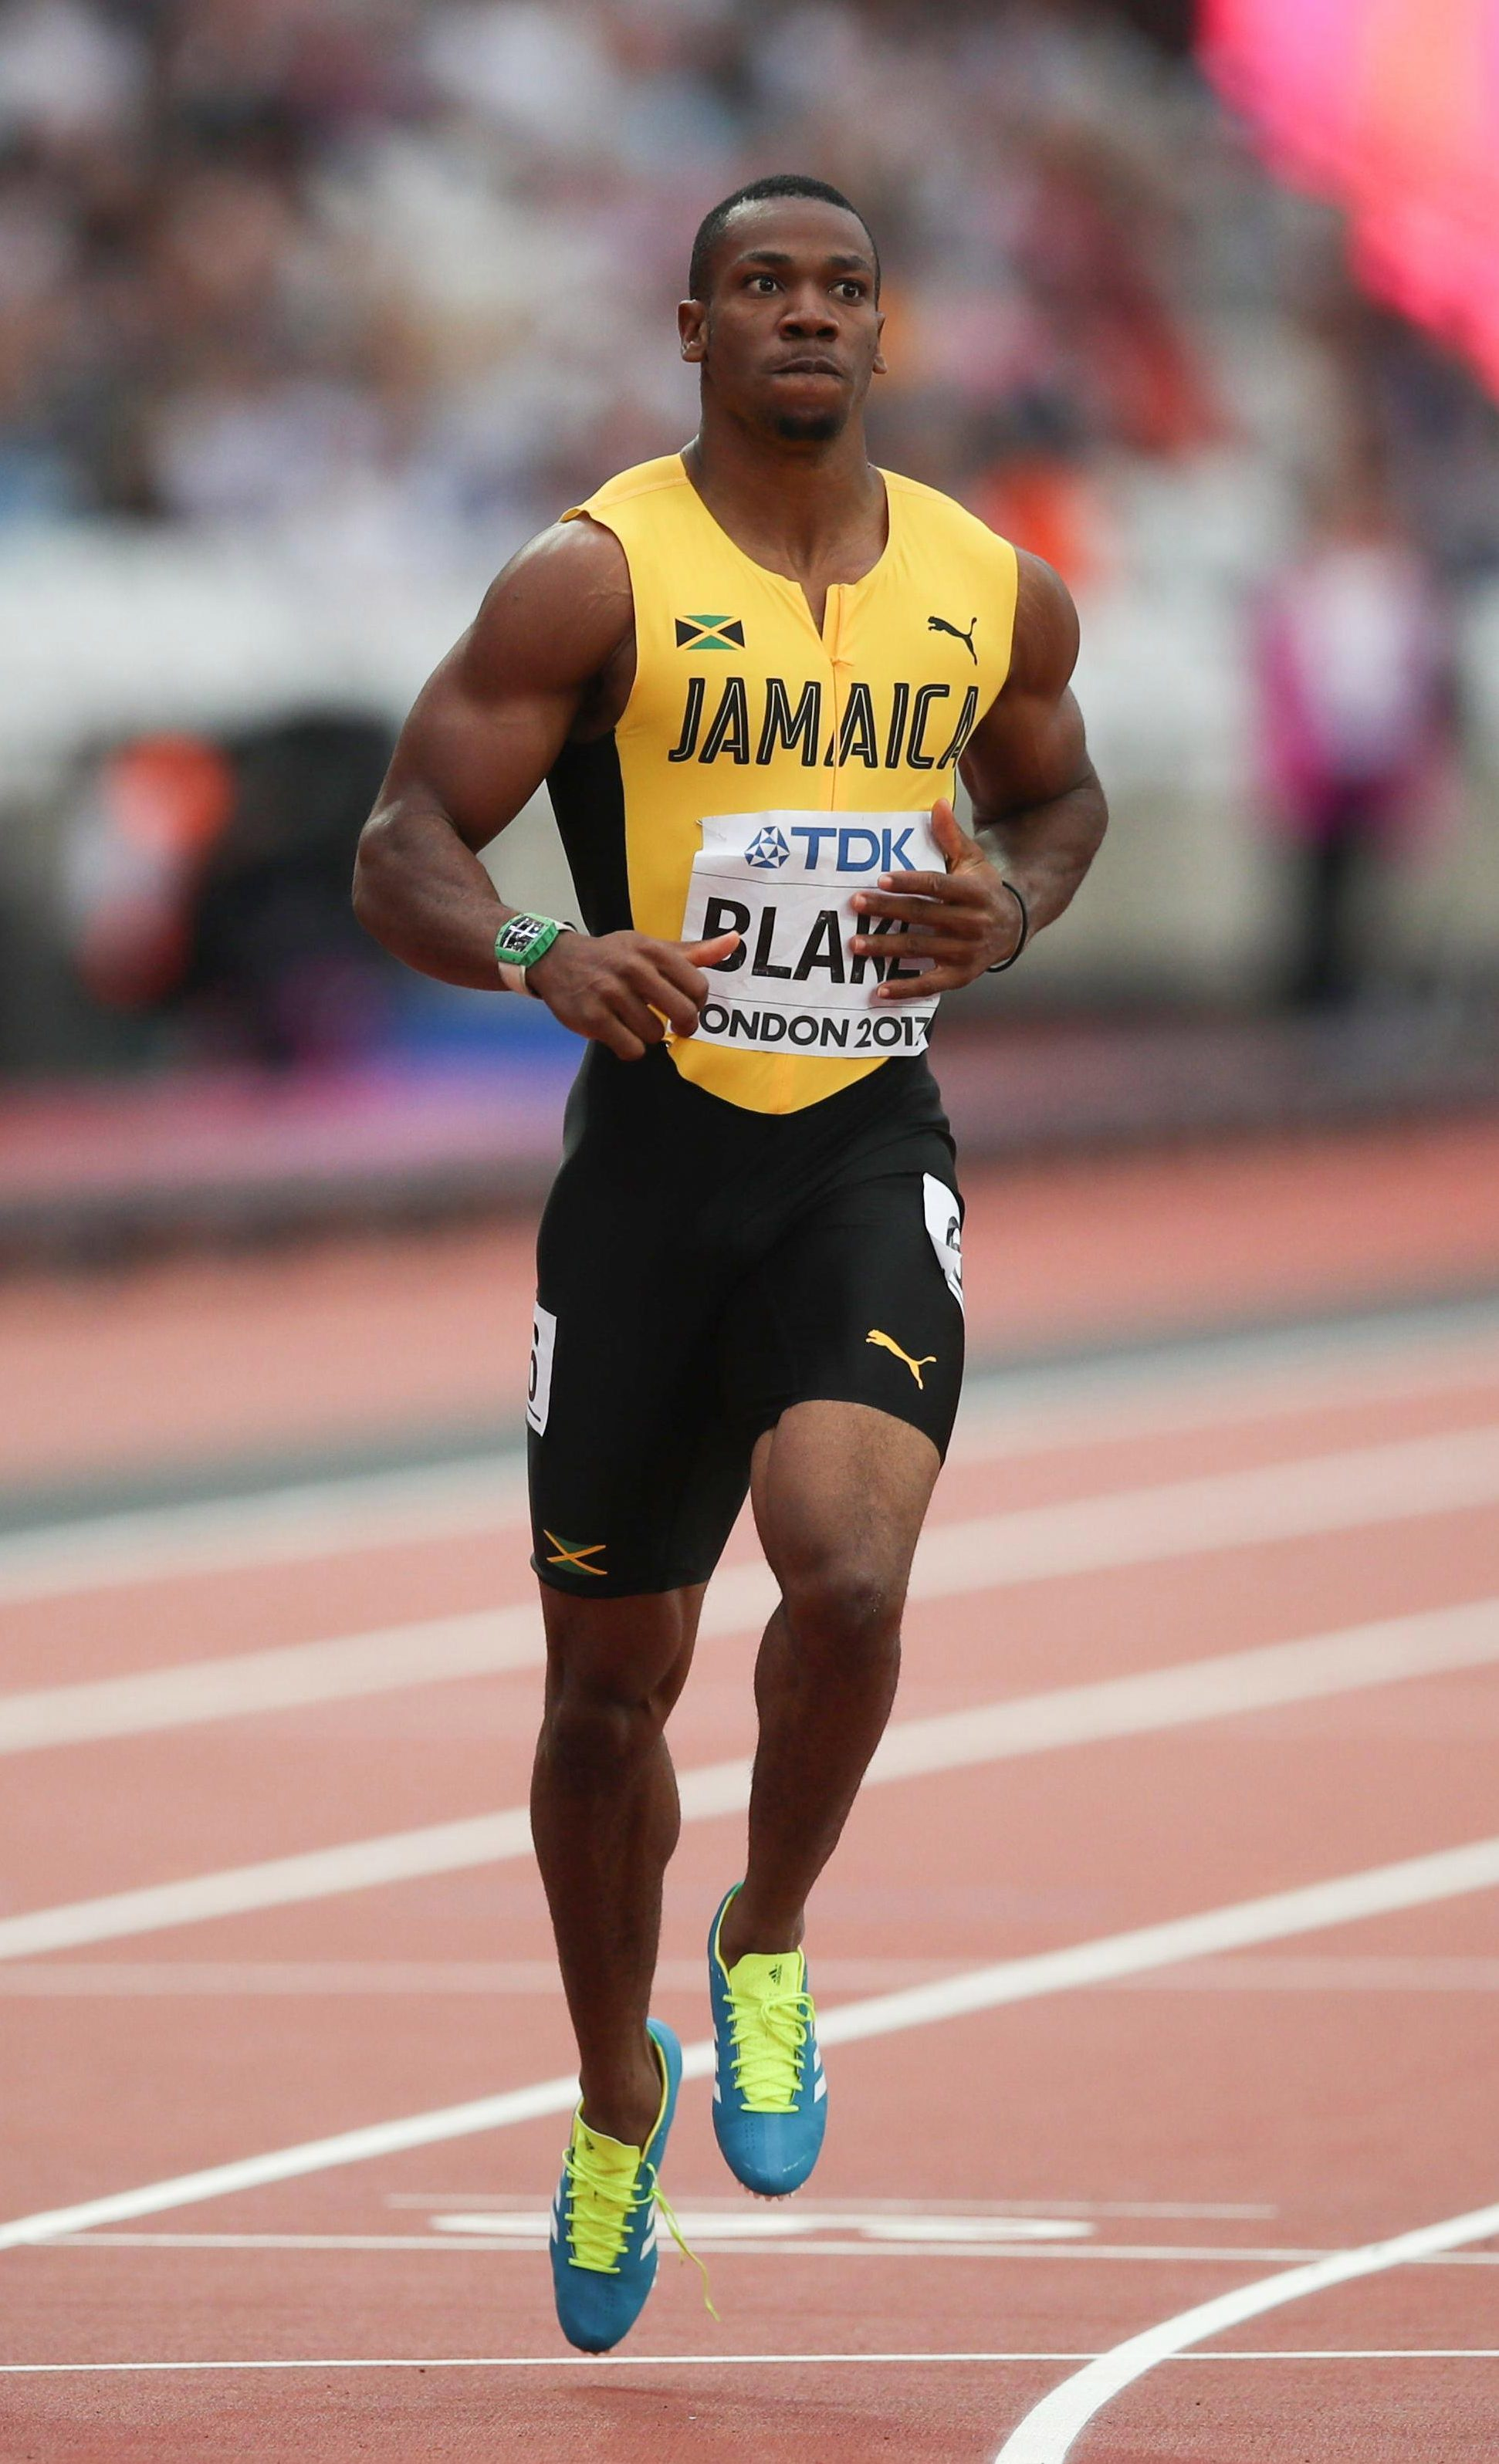 Usain Bolt's fellow Jamaican Yohan Blake could become the top dog